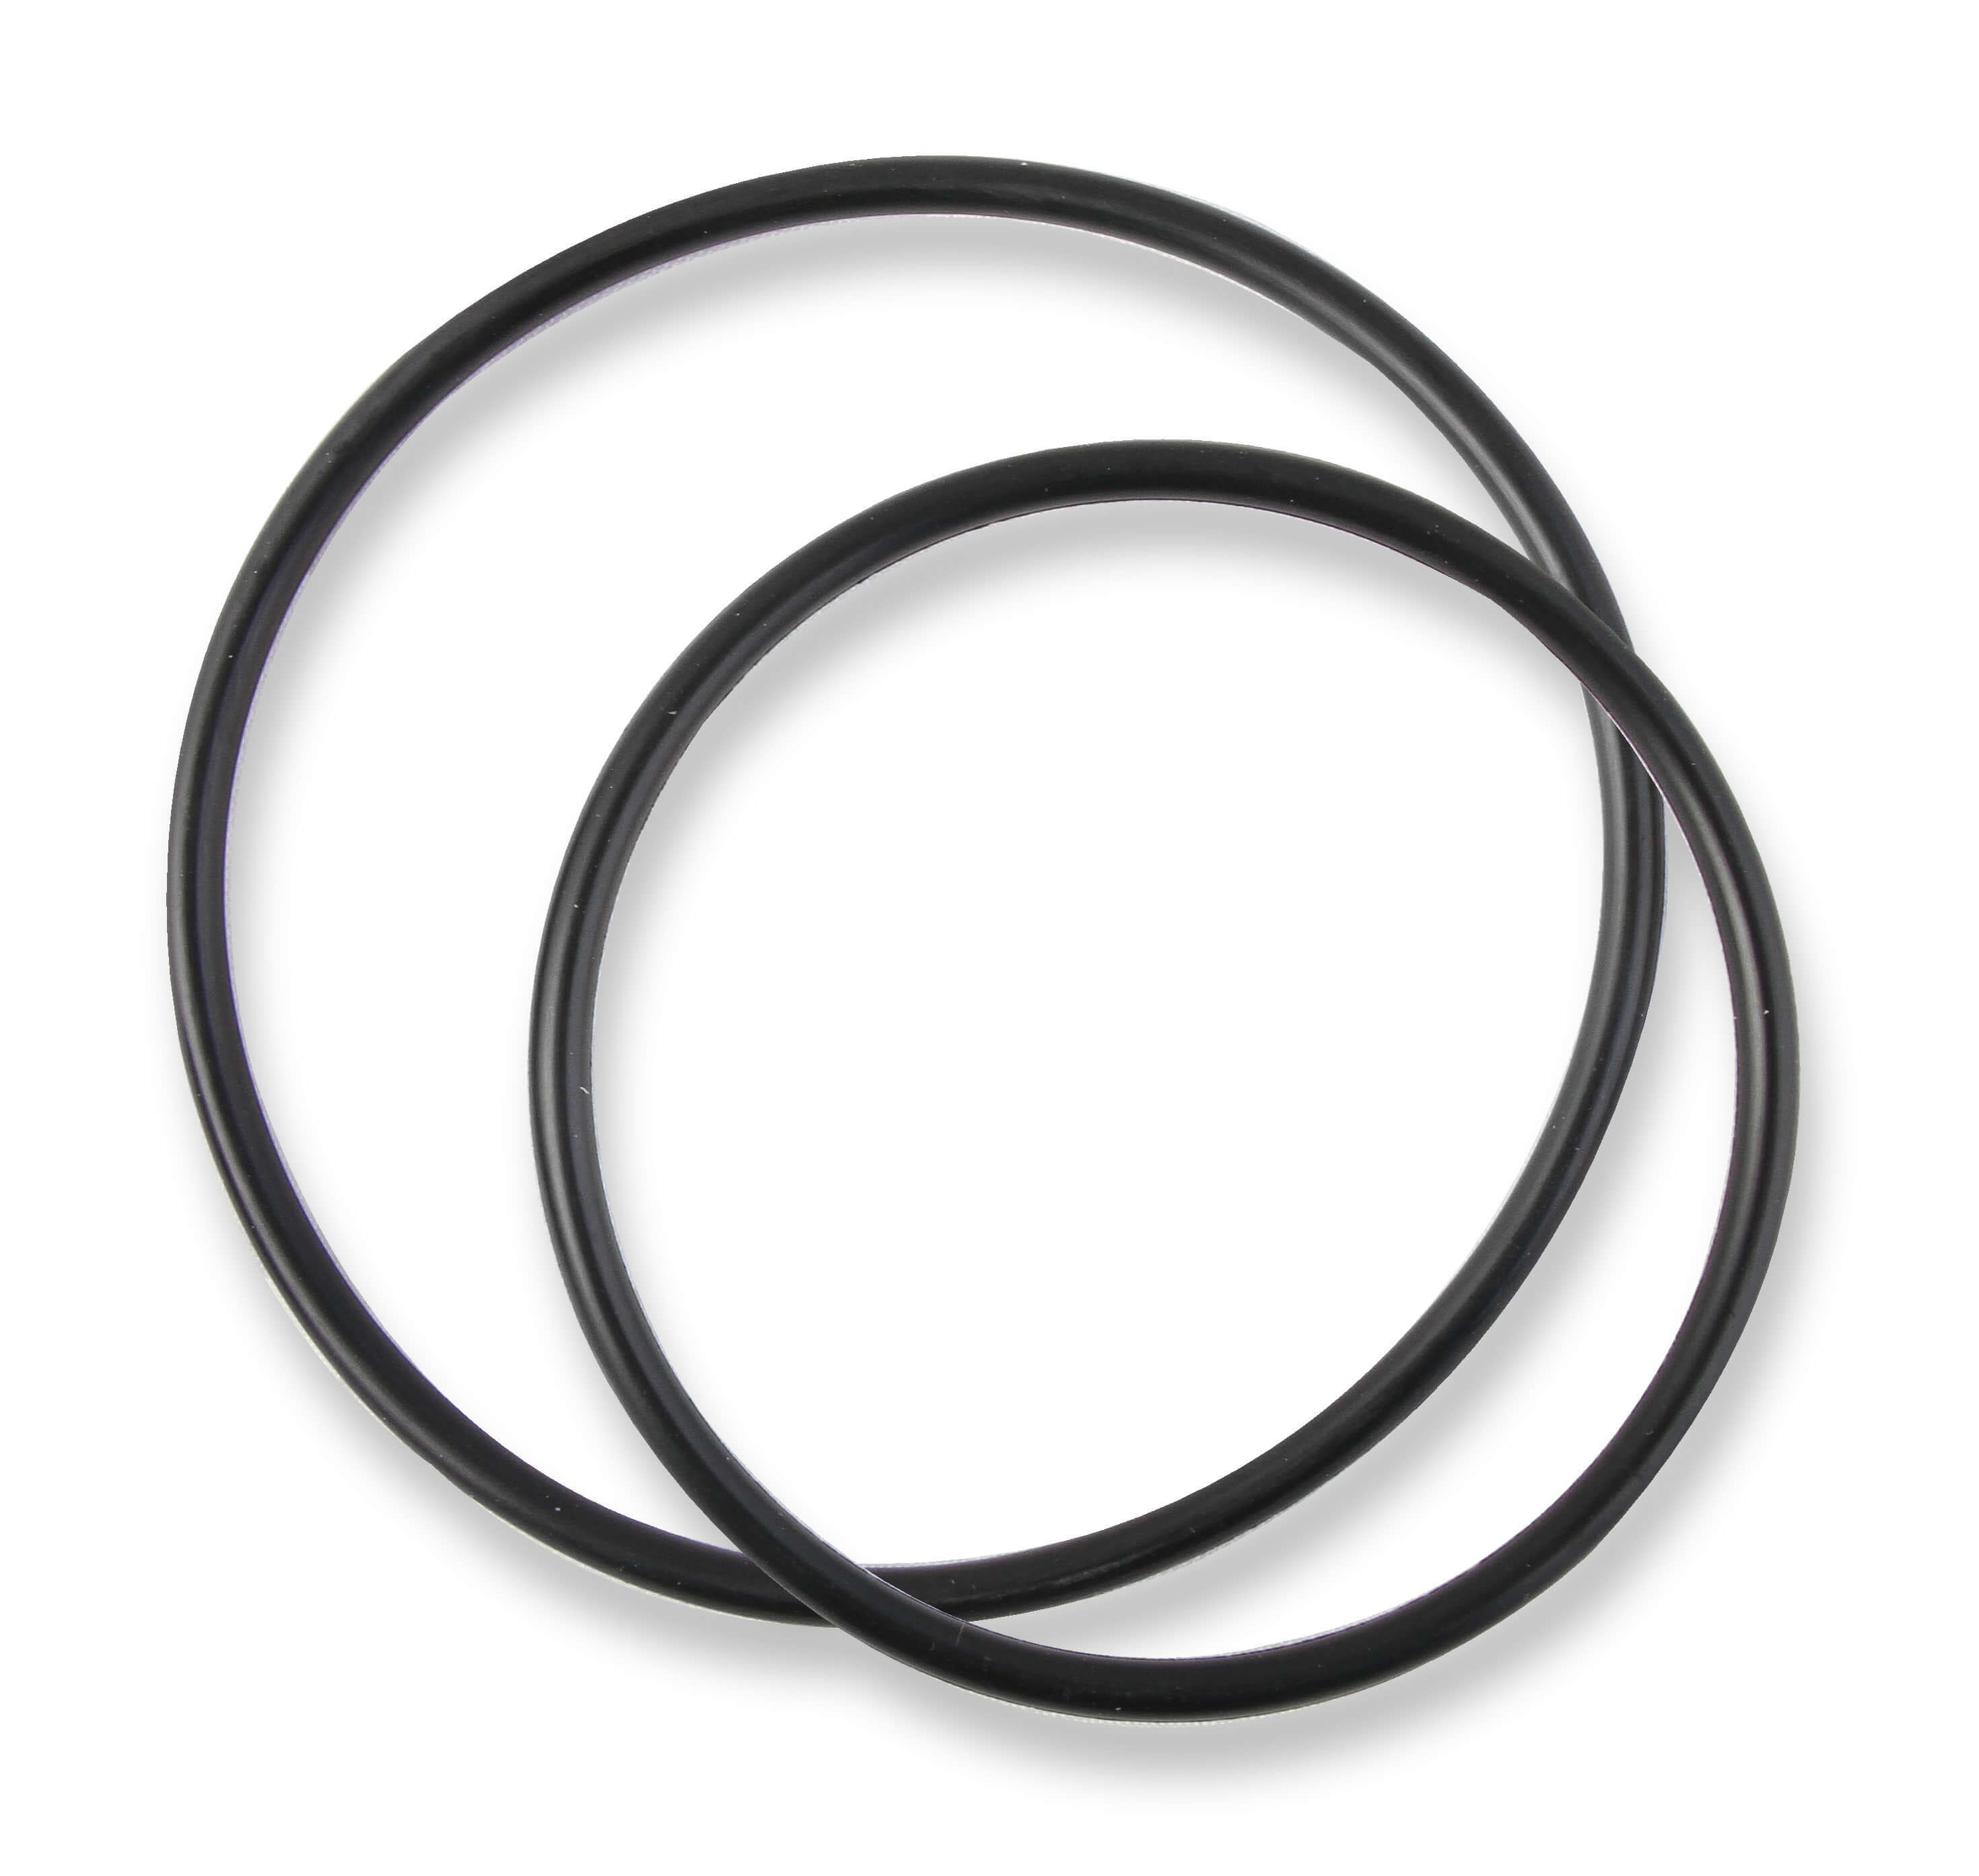 Earls 176502ERL O-Ring, Rubber, Earl's Oil Thermostat Adapter, Each